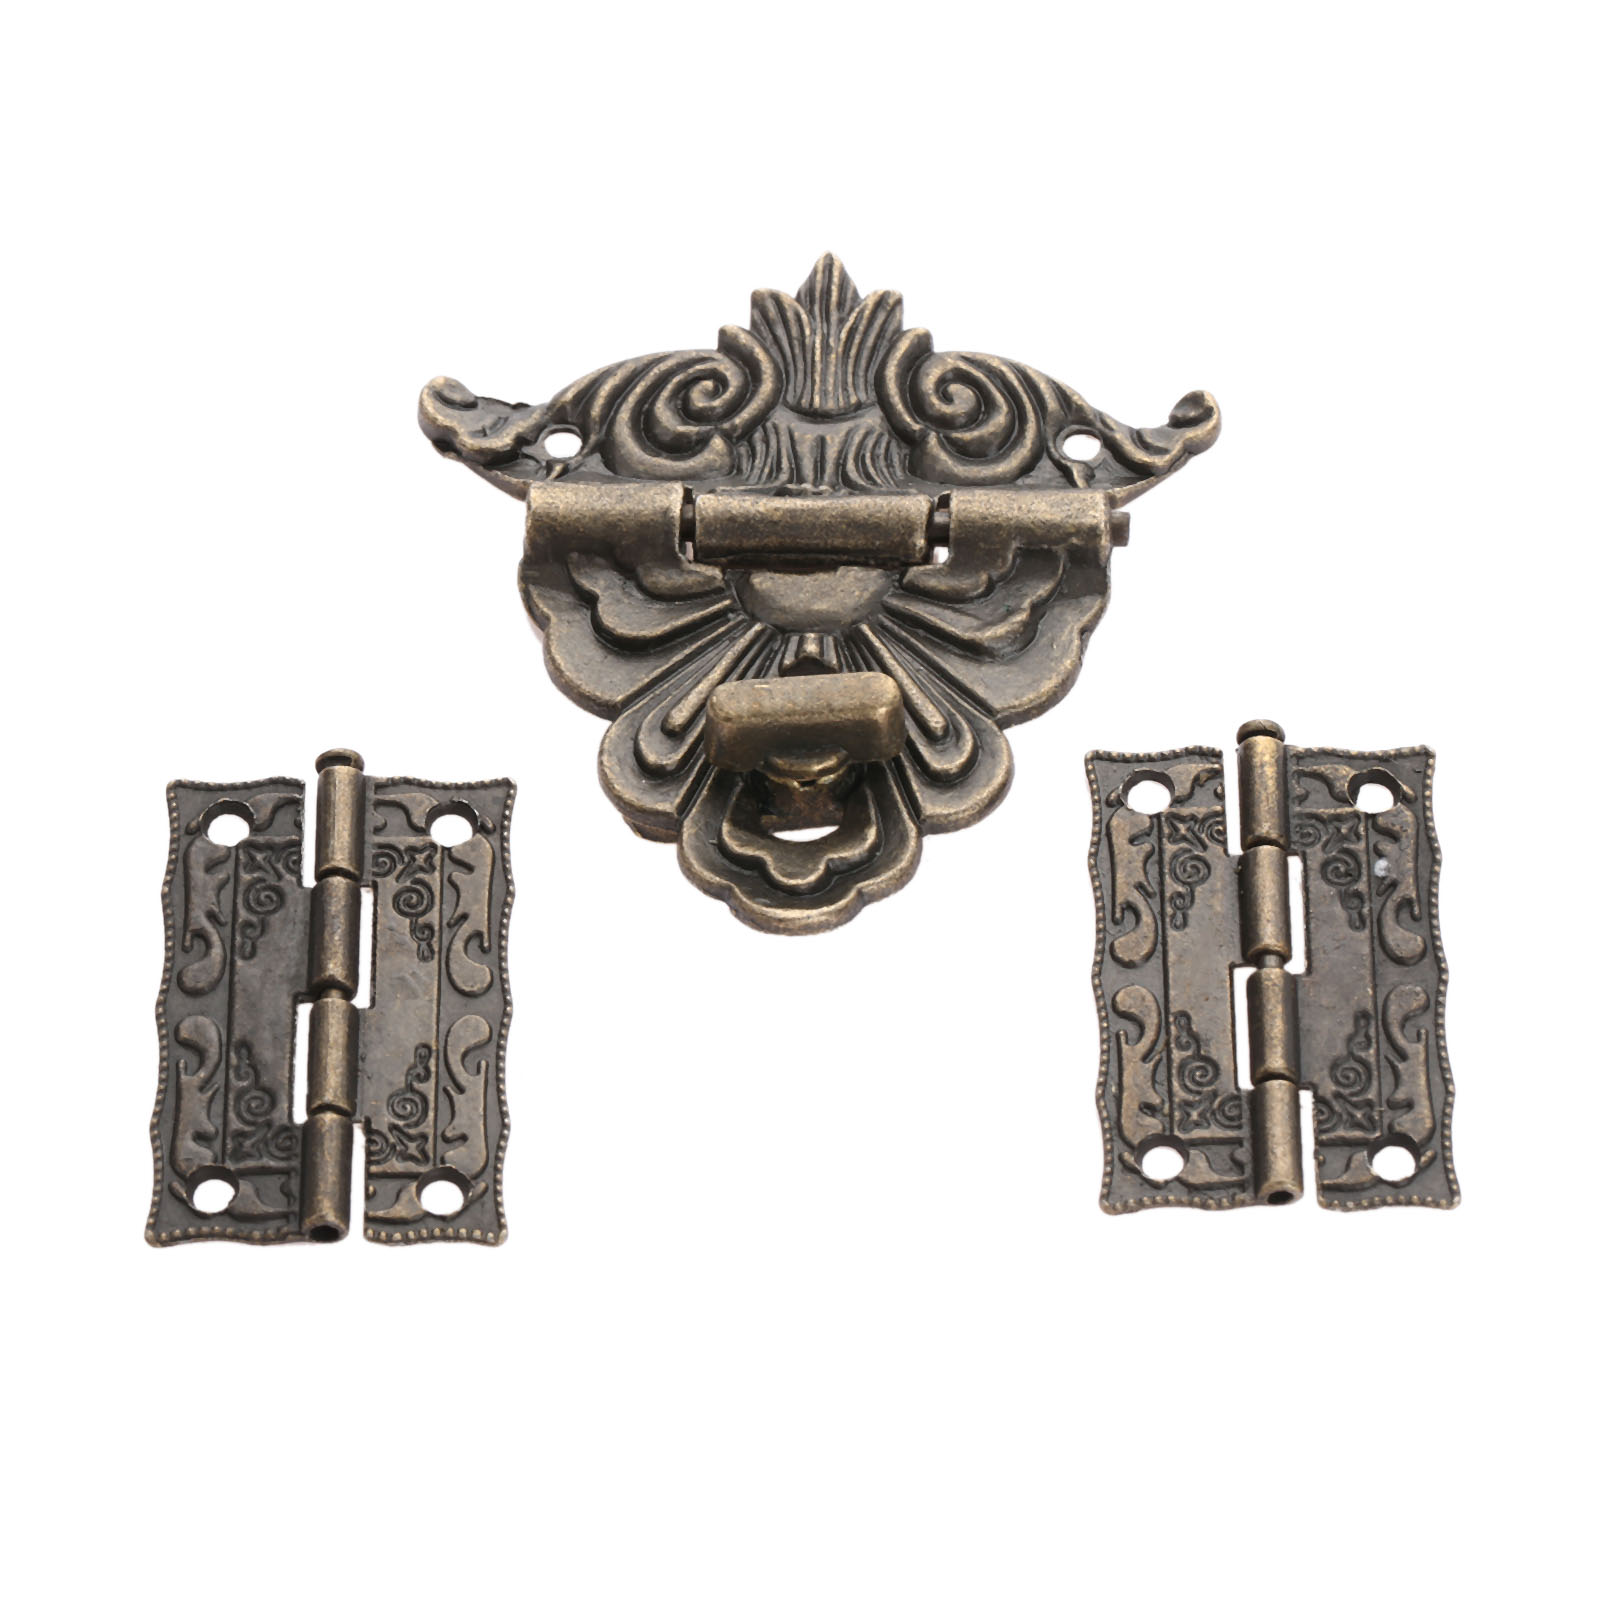 2Pcs Antique Bronze Cabinet Hinges With Jewelry Wooden Box Toggle Hasp Latch Clasp Vintage Hardware Set Furniture Accessories